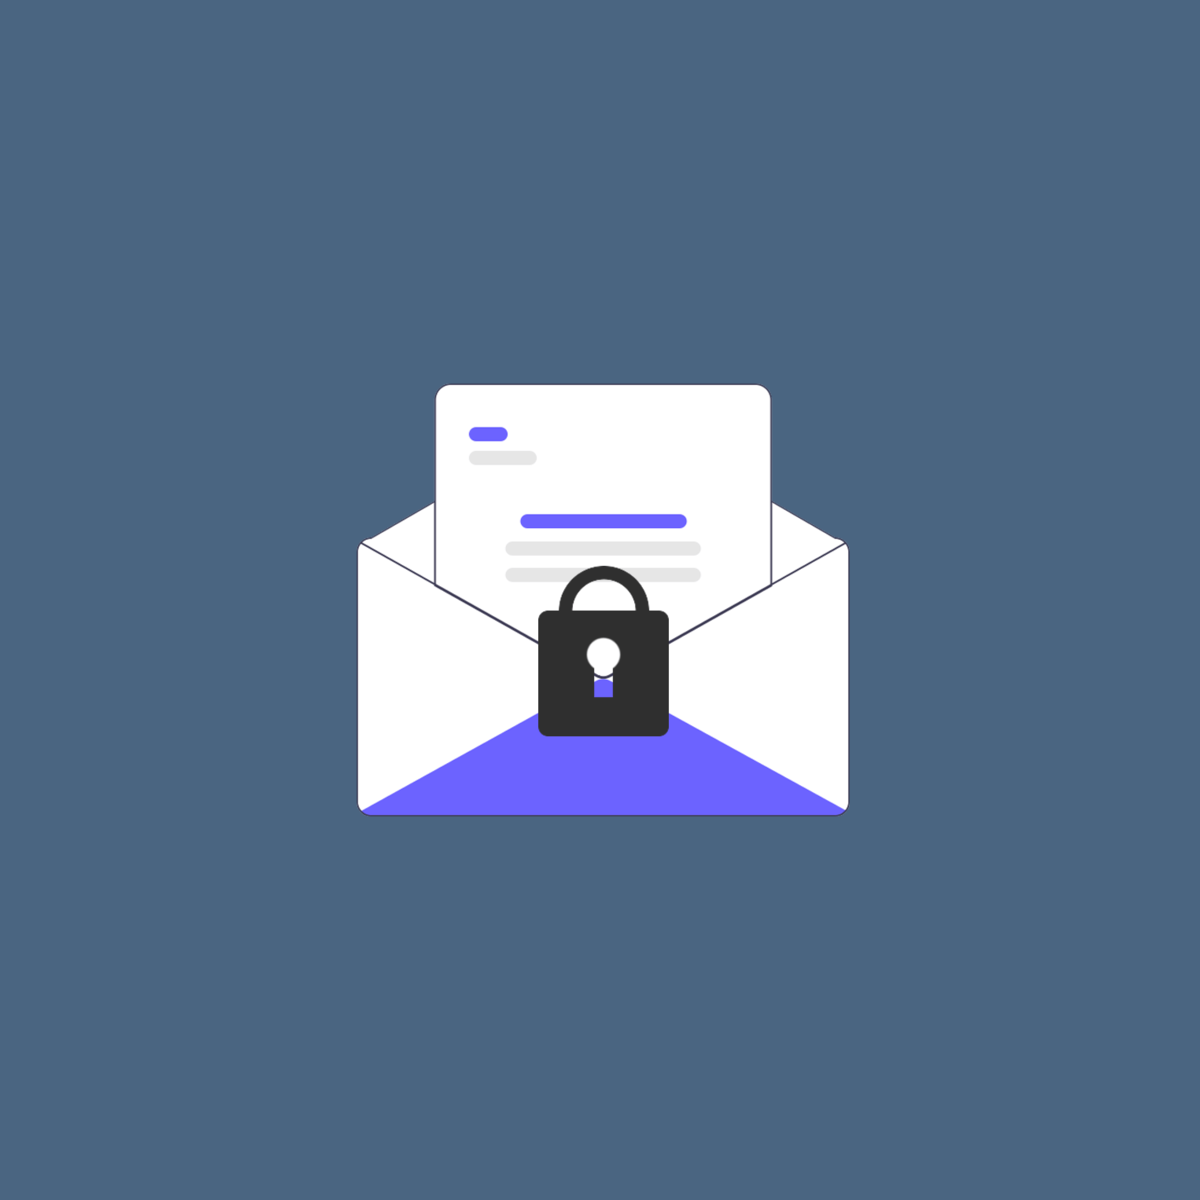 protonmail security and privacy